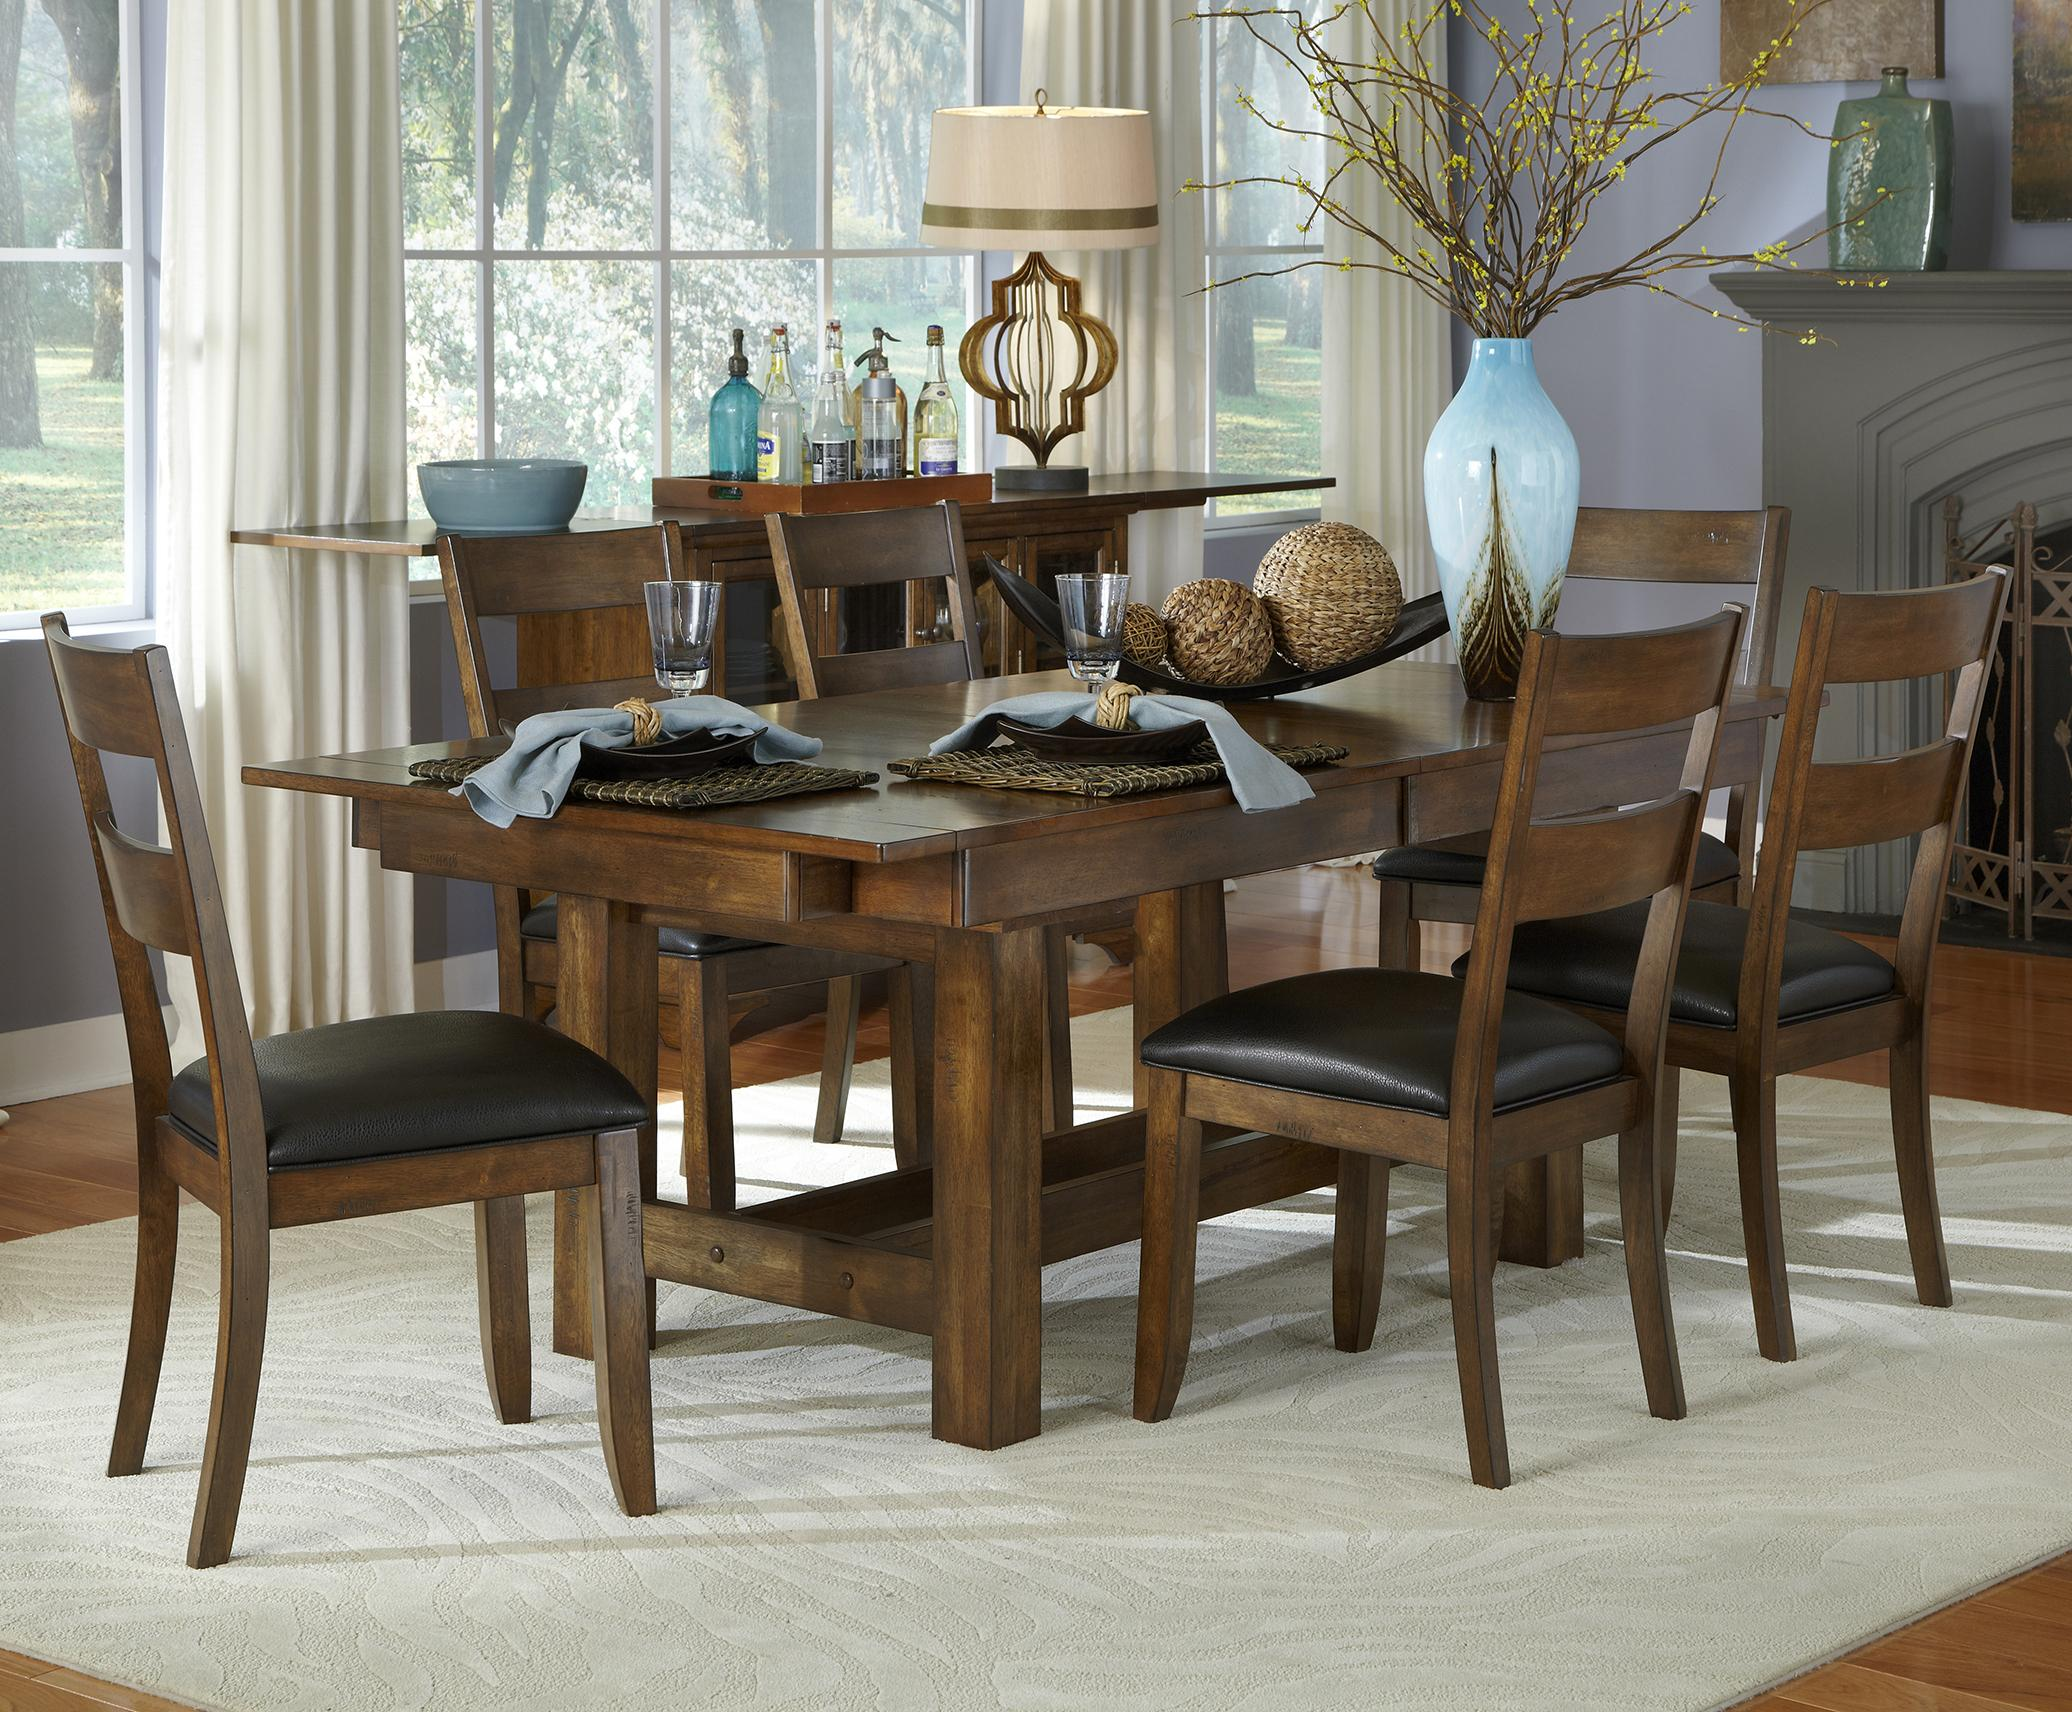 AAmerica Mariposa 7 Piece Table and Chairs Set - Item Number: MRP-RW-6-08-0+6x2-55-K